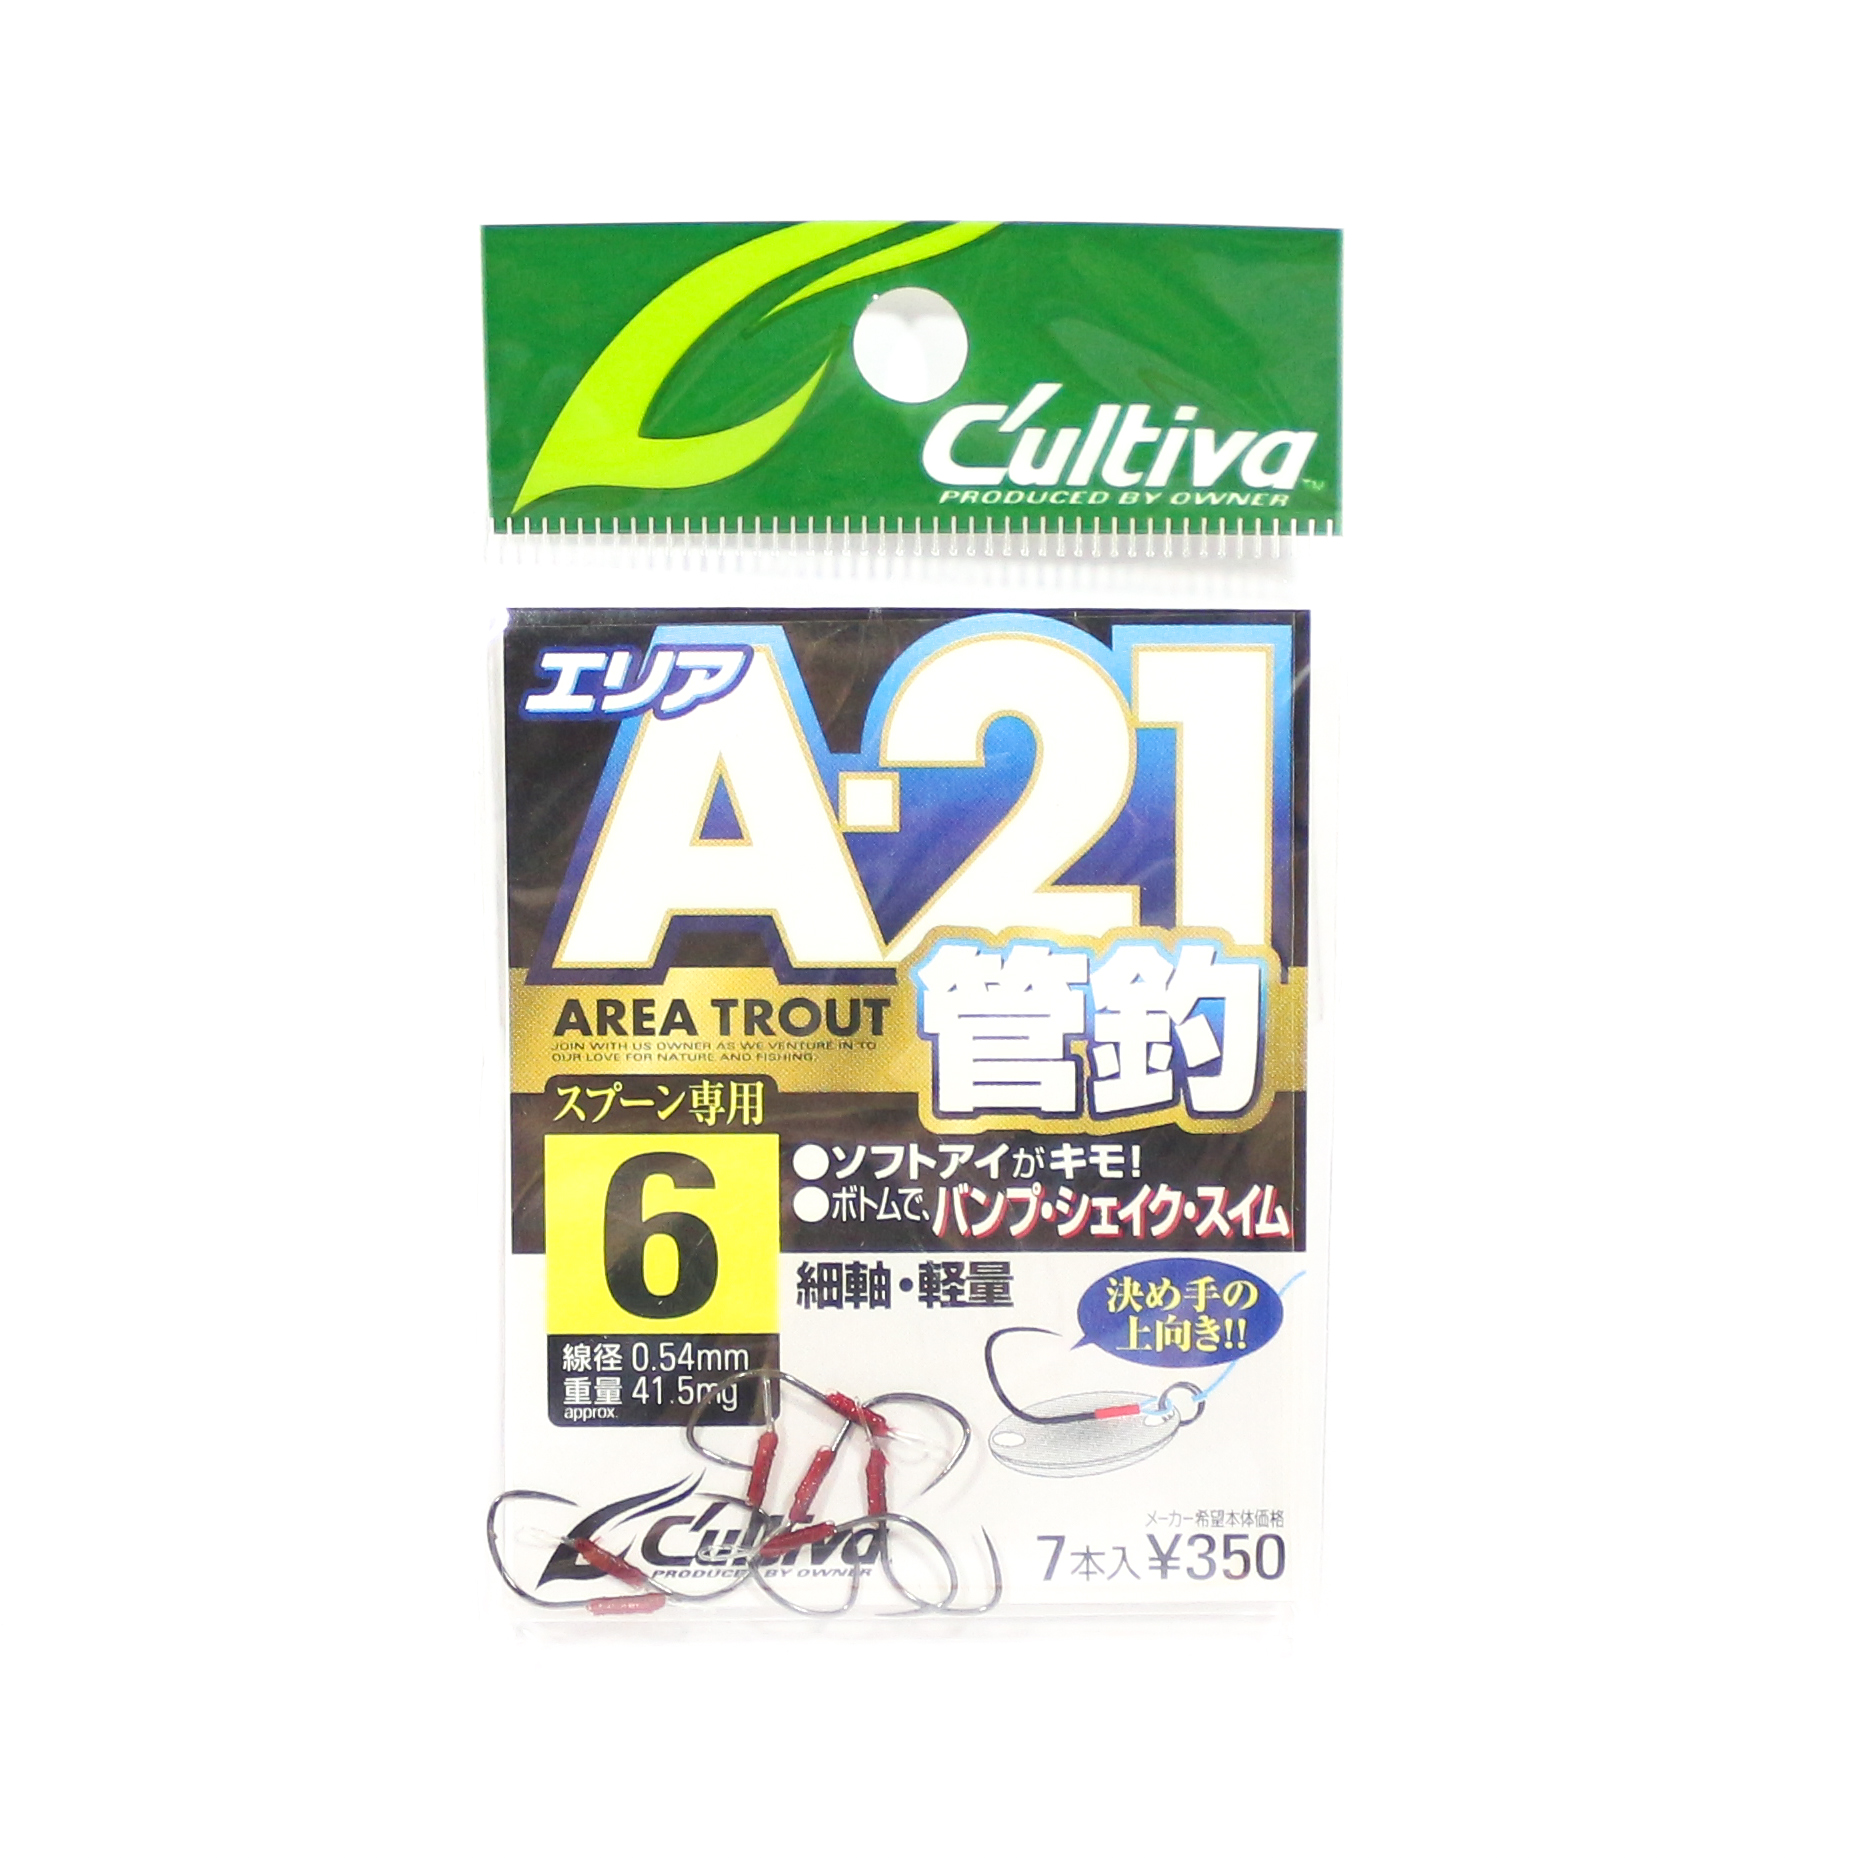 Owner A-21 Area Trout Single Hook for Spoon Barbless Size 6 (6406)